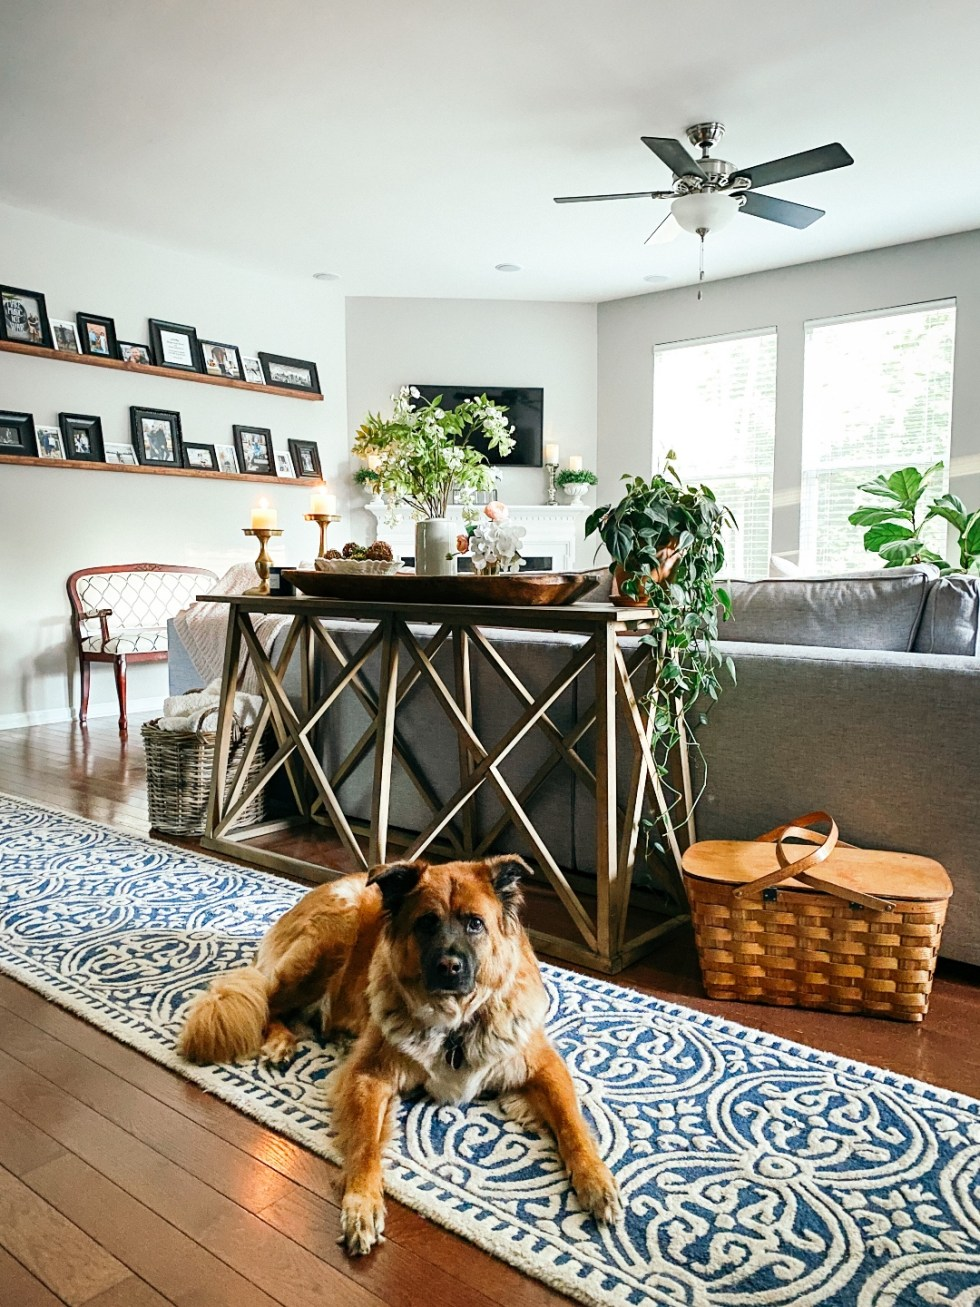 Room Reveal: Blue and Gray Living Room Ideas - I'm Fixin' To - @imfixintoblog. | Blue and Grey Living Room Ideas by popular NC life and style blog, I'm Fixin' To: image of a living room decorated with a blue and white rug runner, light wood sofa table, house plants, floating wood shelves with black picture frames, white pillar candles, wooden picnic basket, blue and white floral wallpaper, and blue and white vintage armchair.